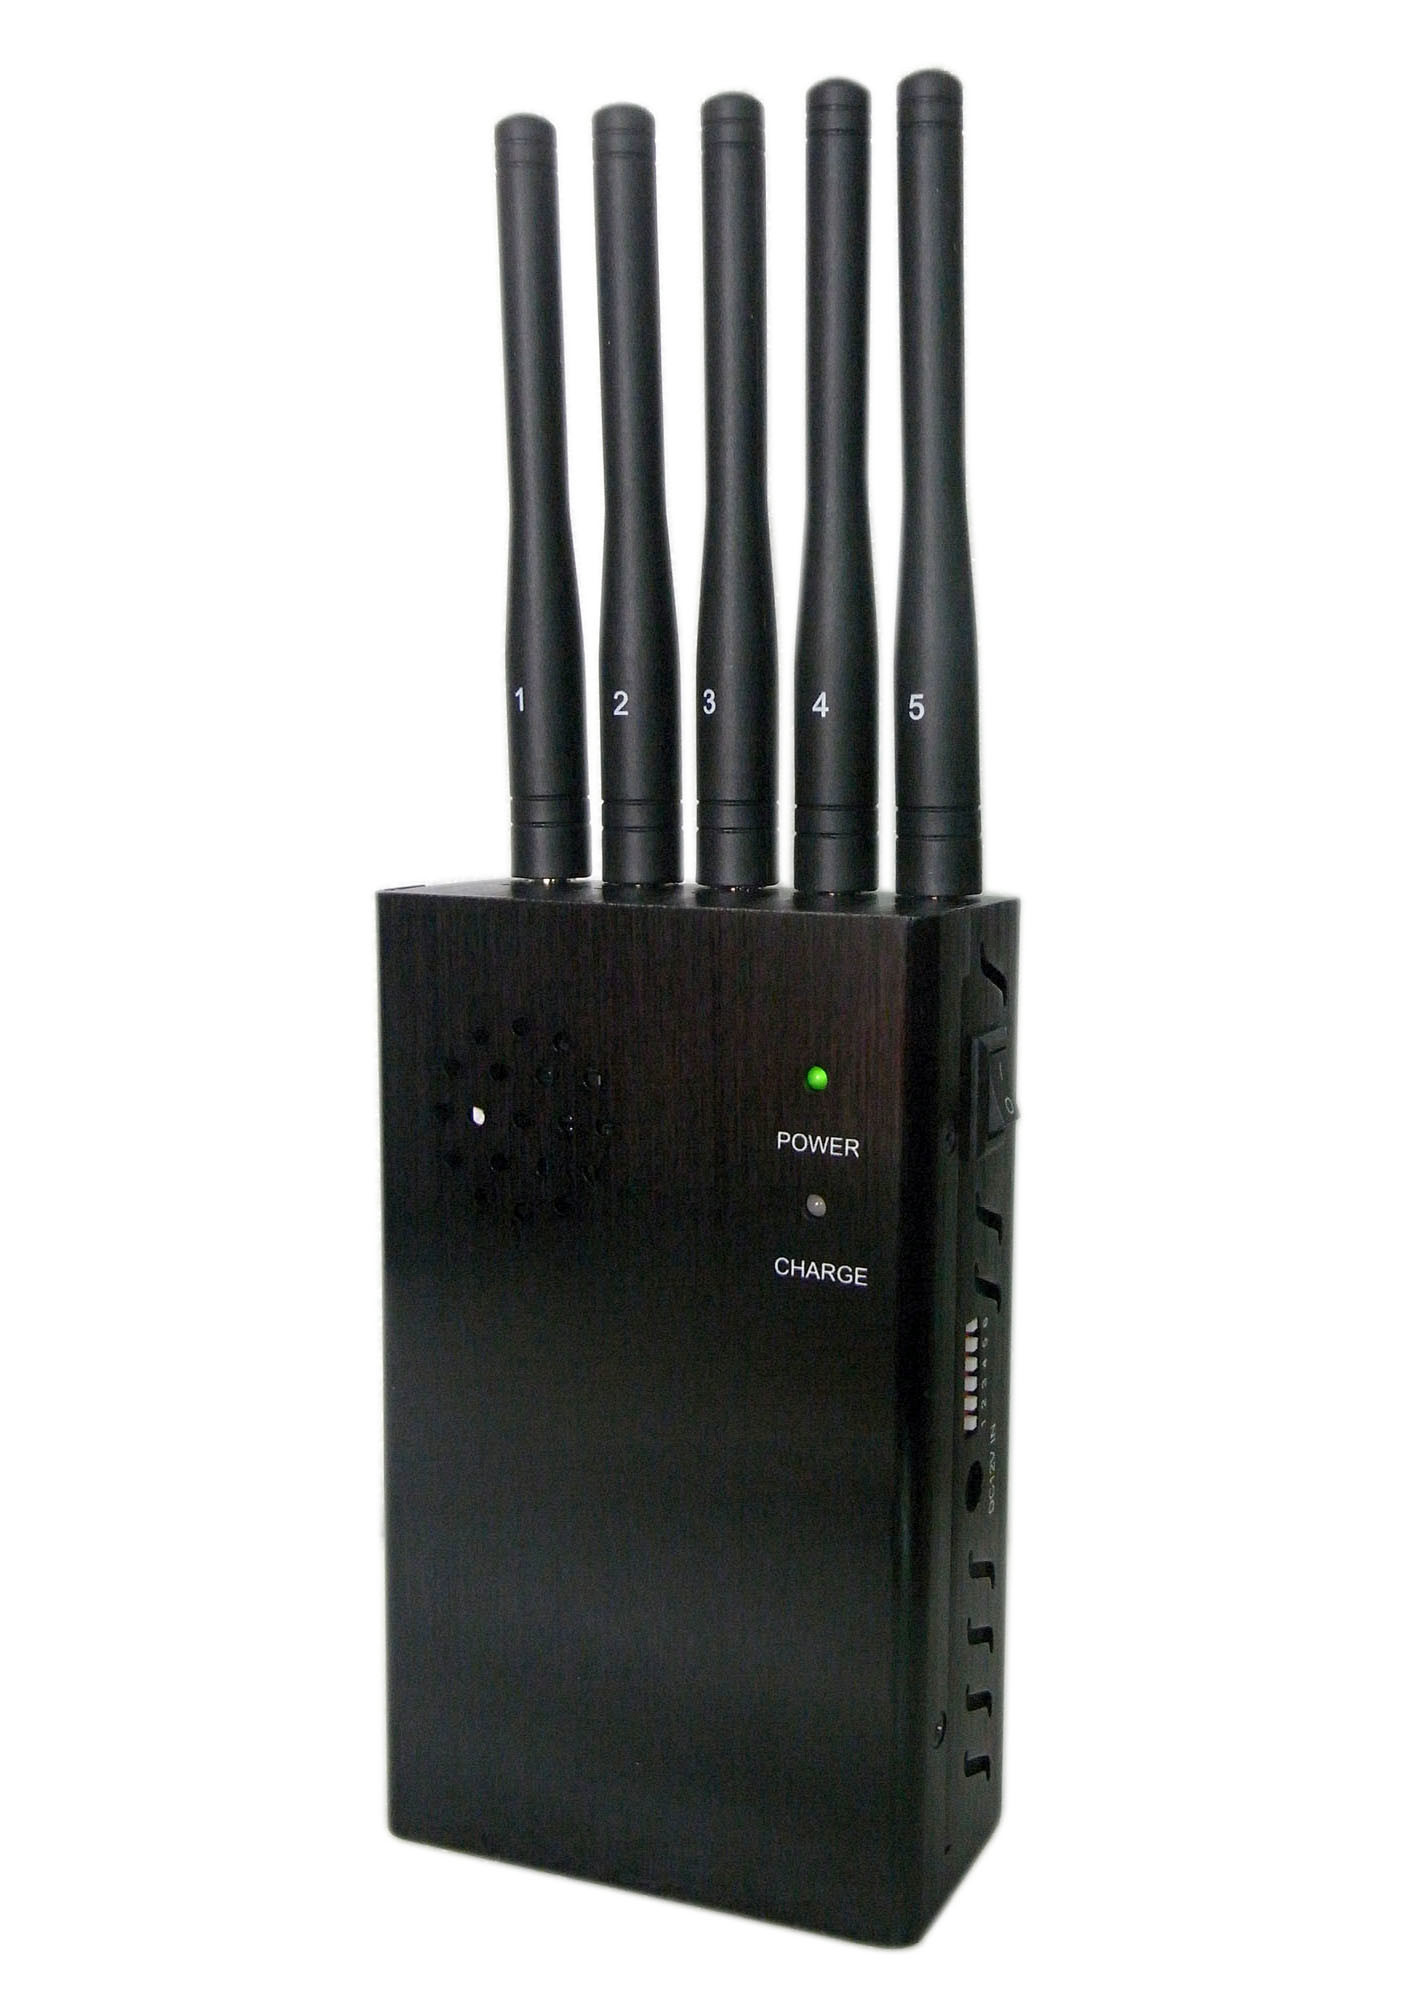 phone jammer project definition